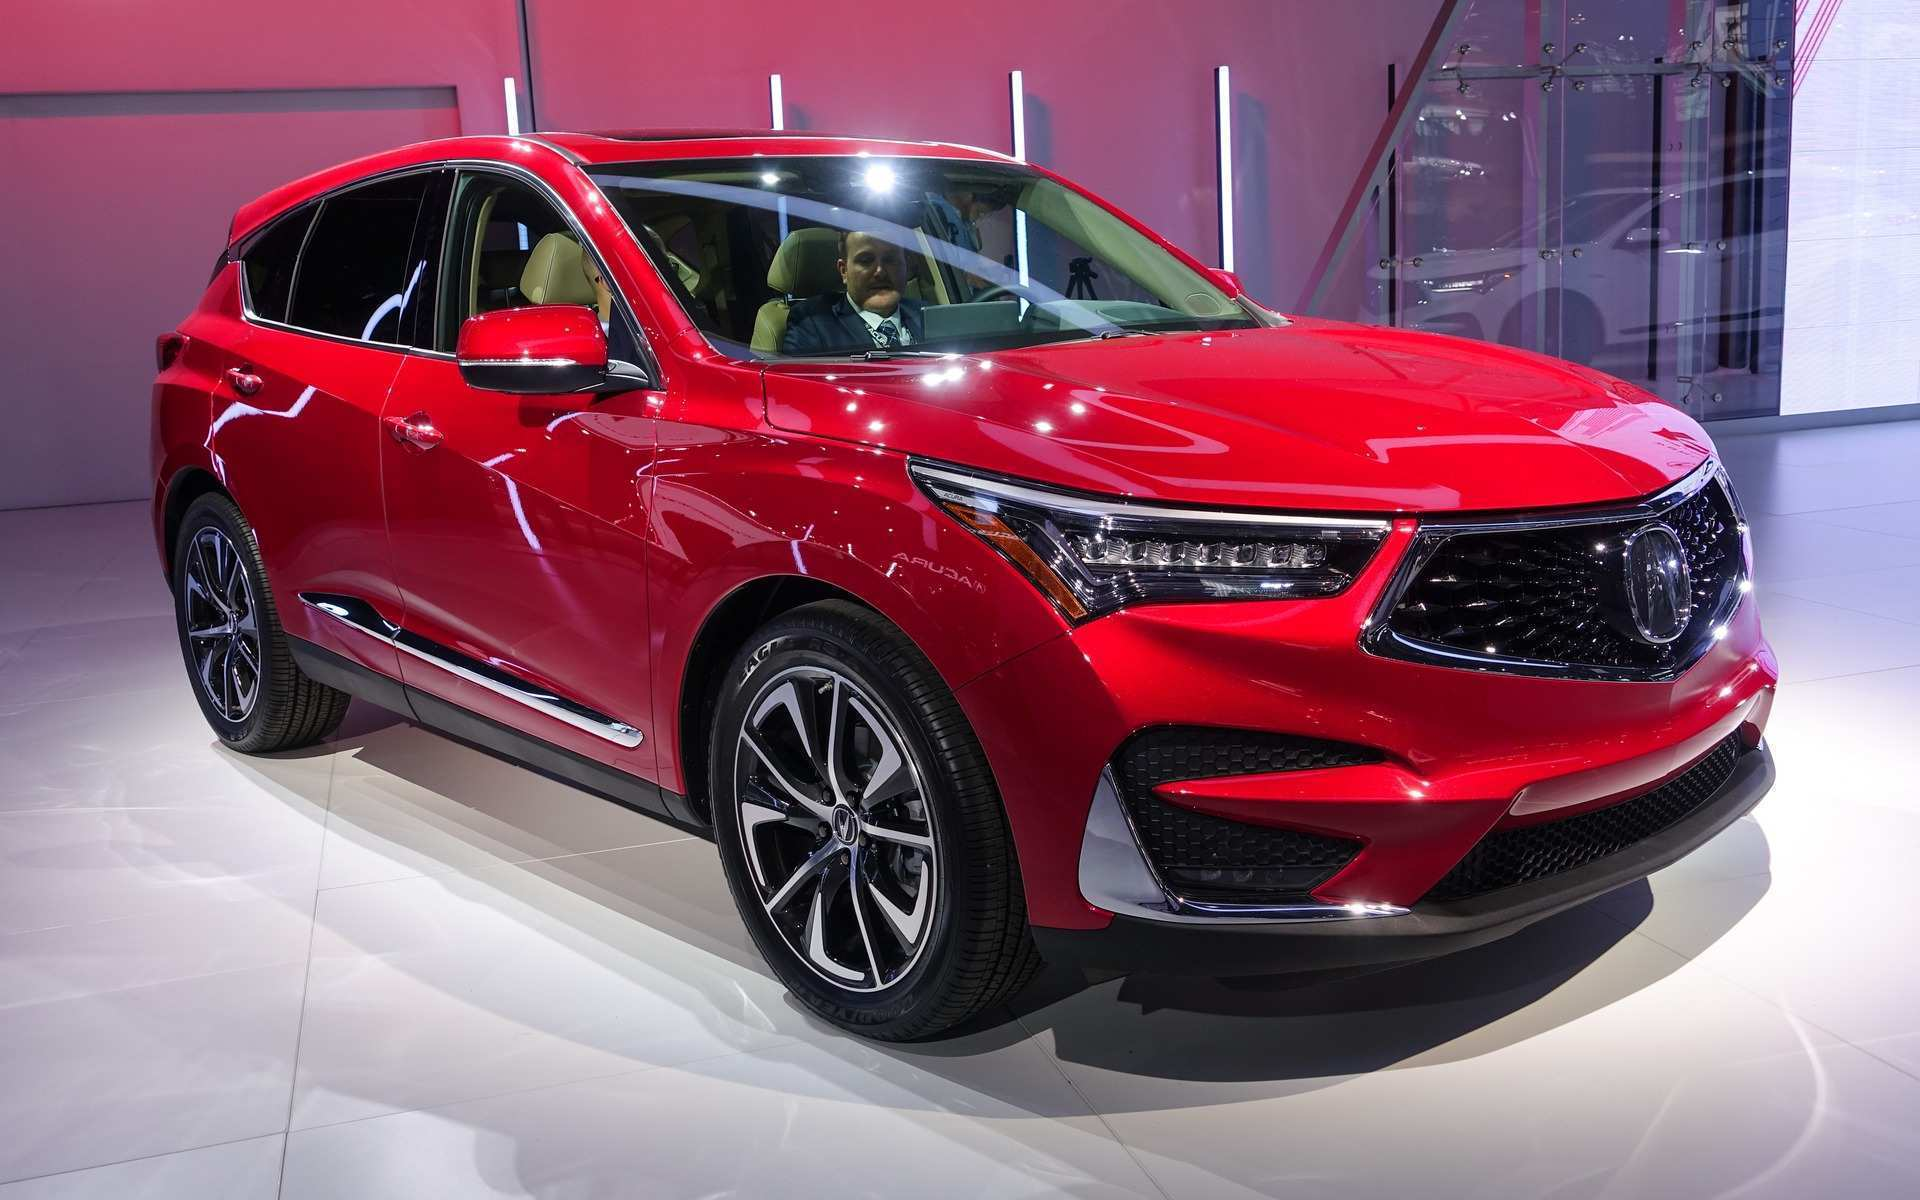 37 New 2019 Acura RDX Images